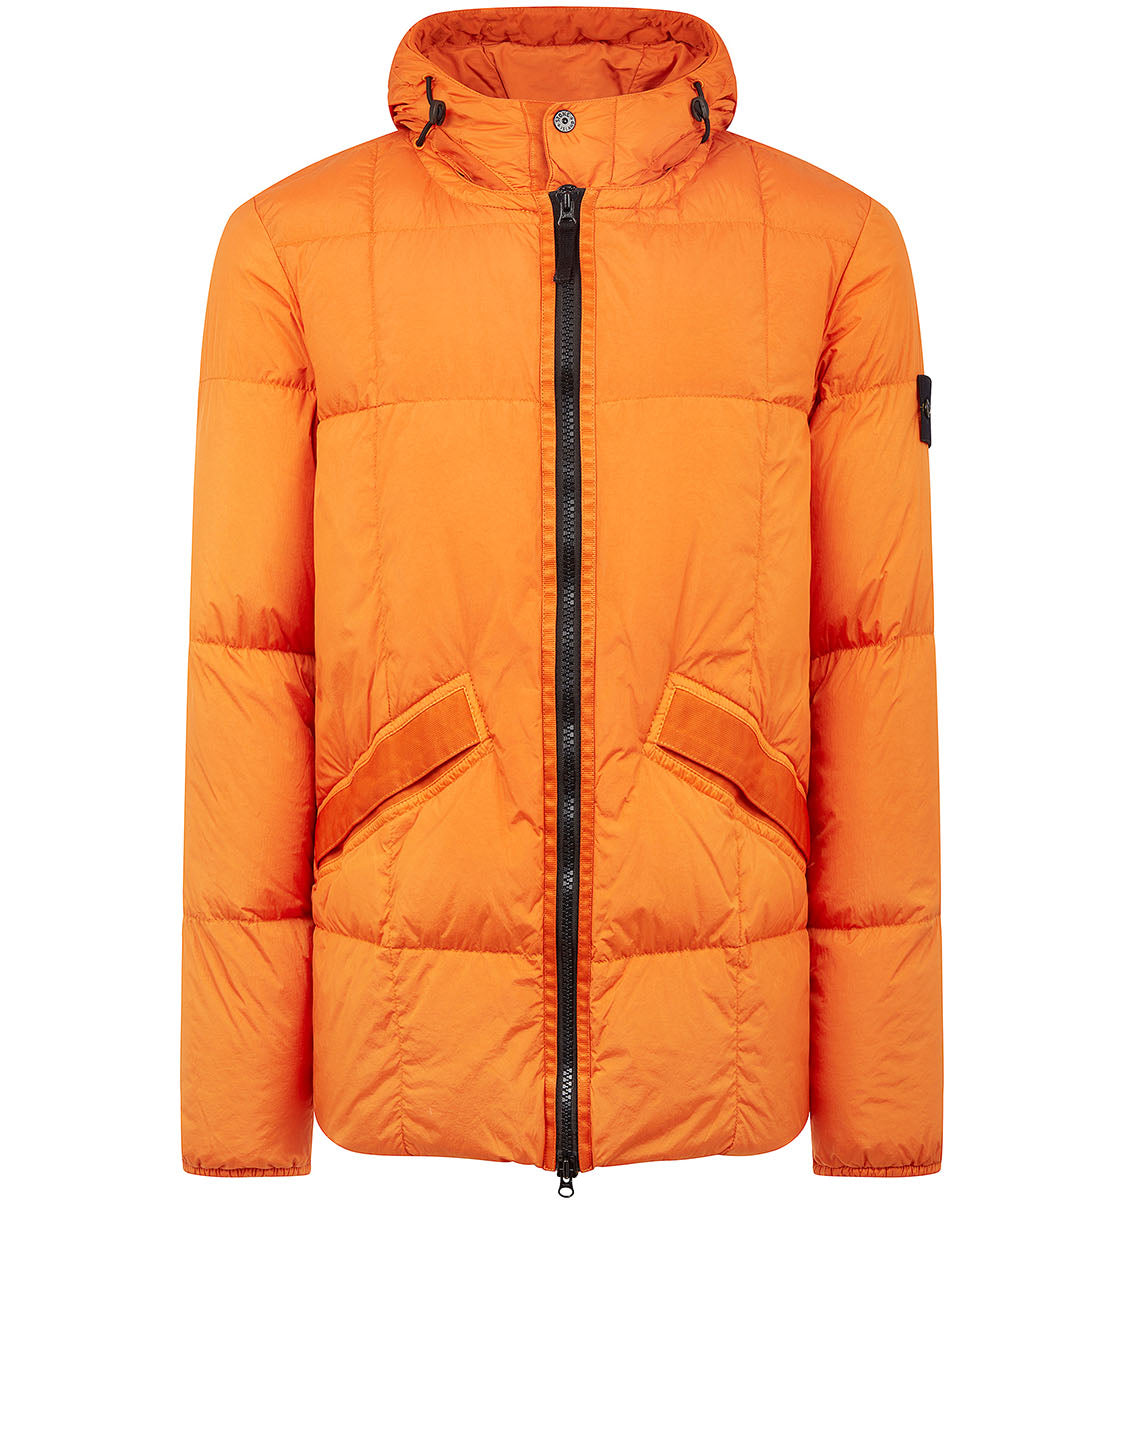 40223 Garment Dyed Crinkle Reps NY Down Jacket in Orange